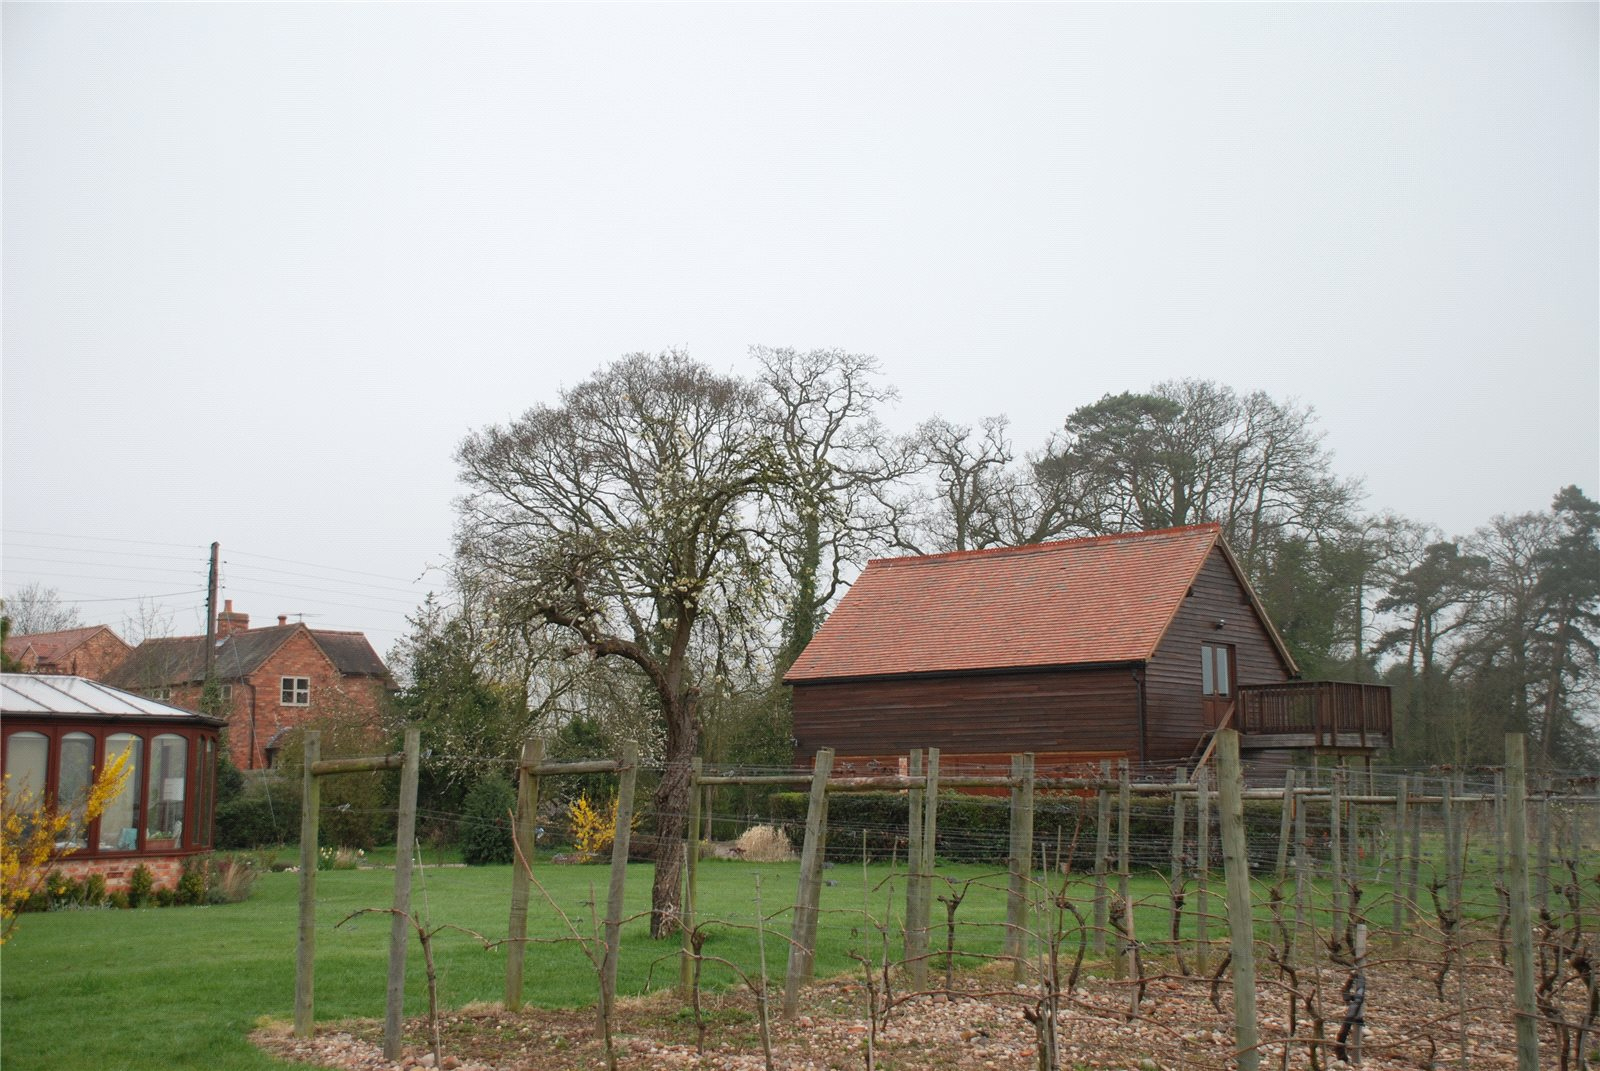 Additional photo for property listing at Kings Lane, Snitterfield, Stratford-upon-Avon, Warwickshire, CV37 Stratford Upon Avon, England